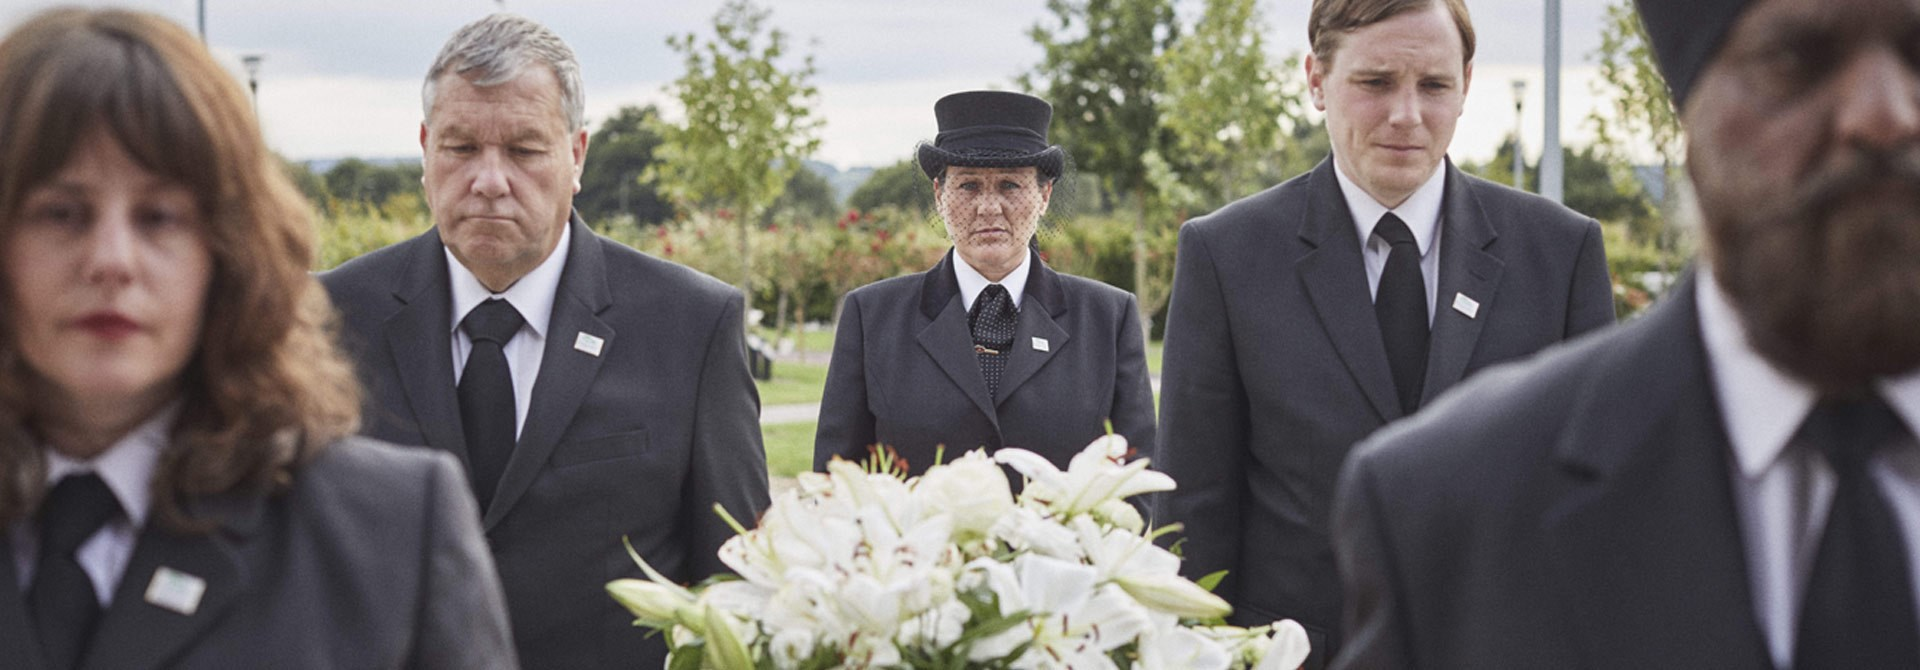 Compare funerals services and choices Dignity Funerals